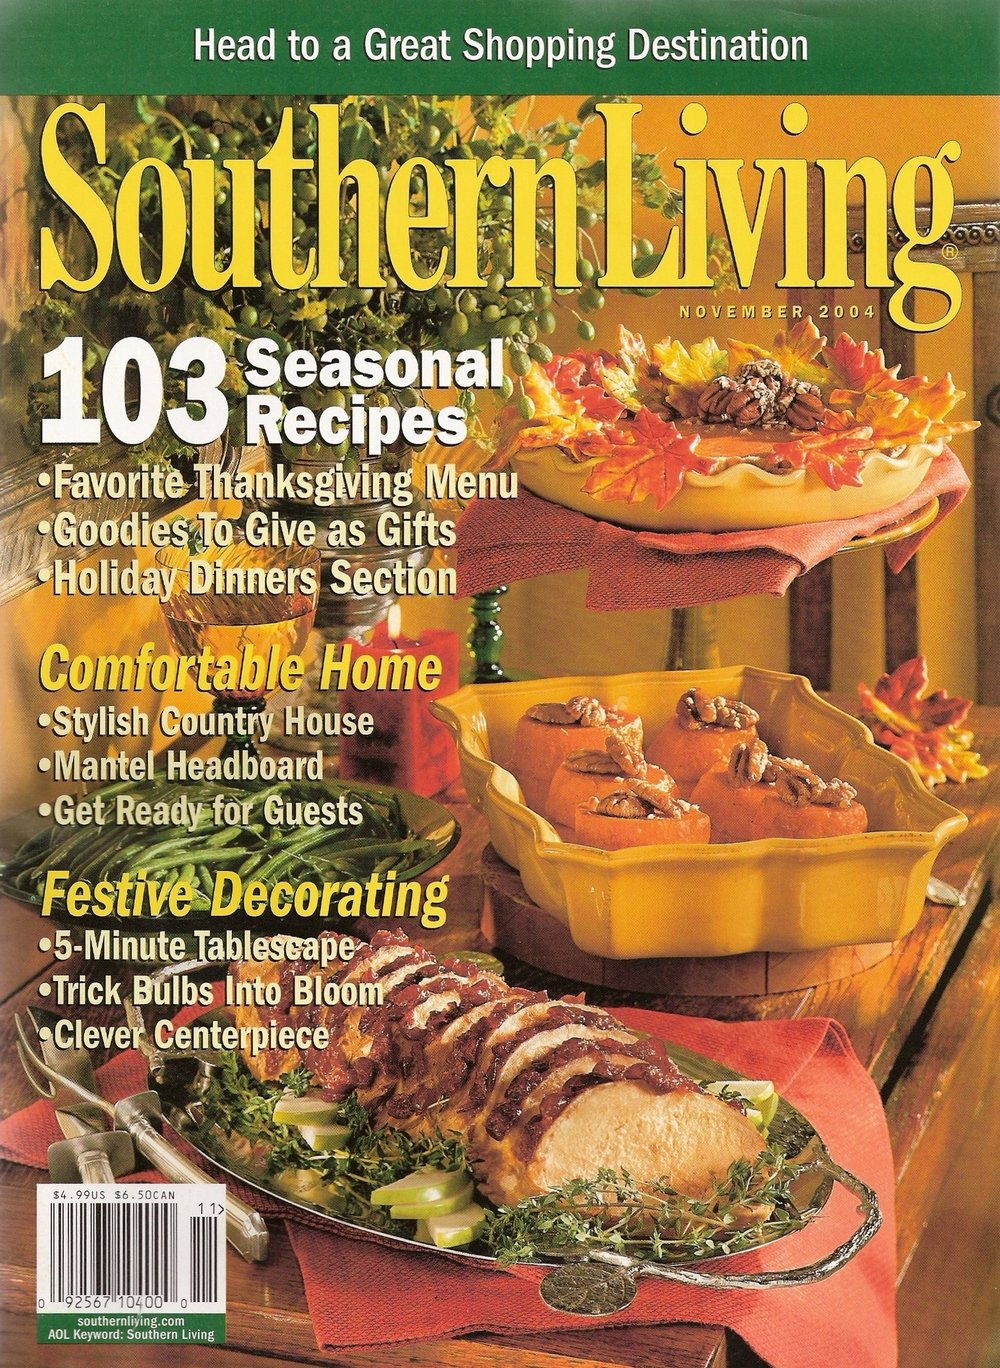 Home - Southern Living 1 Cover.jpg